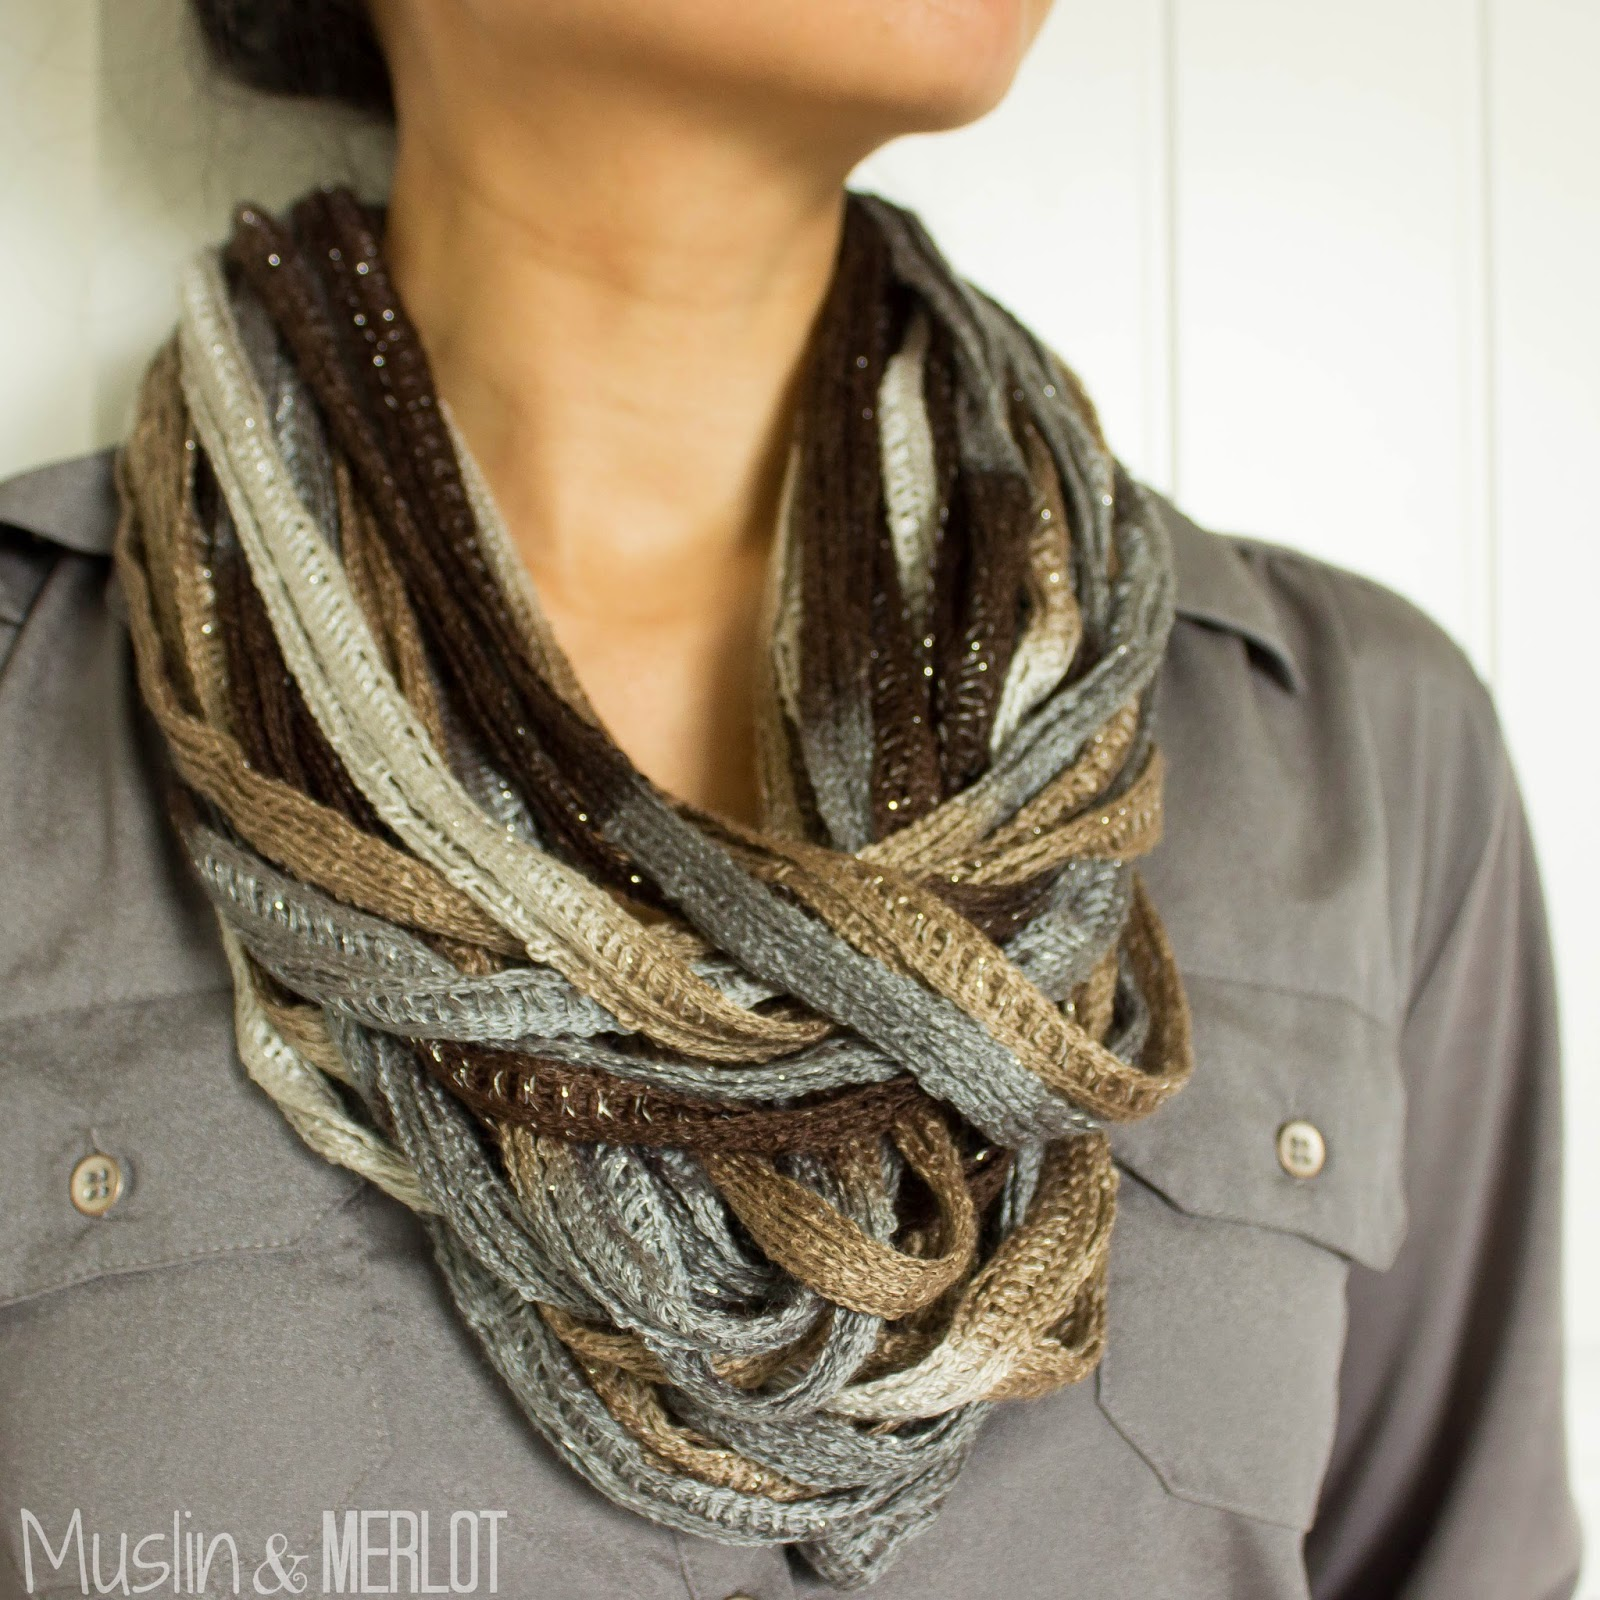 here s a 5 dollar 5 minute no sew no knit project that anyone can make